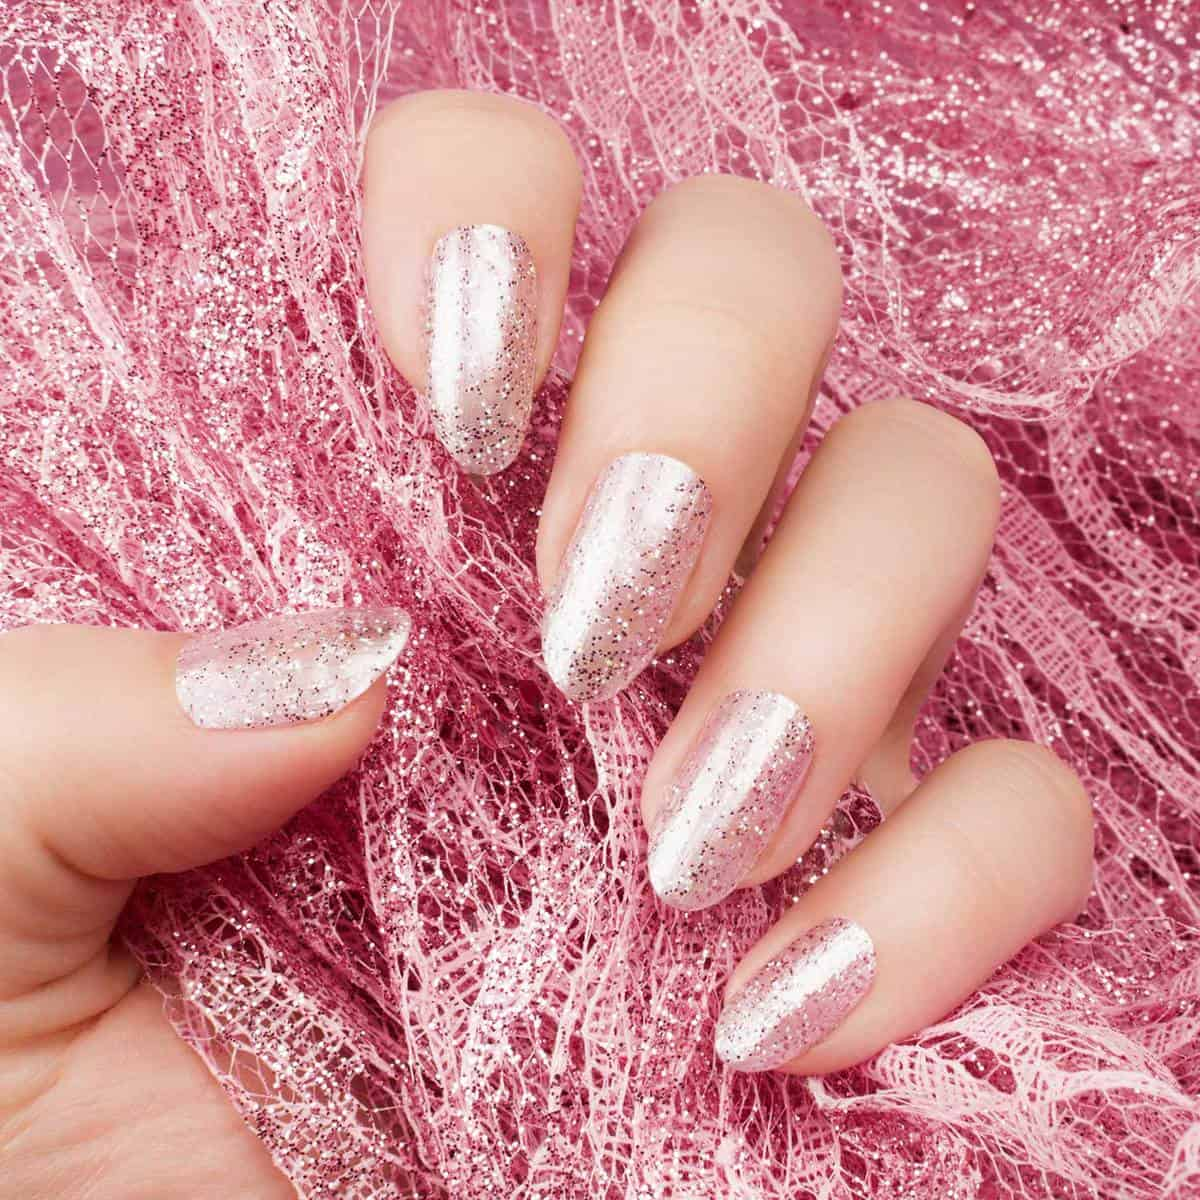 Female hand with glittered shiny rose nails is holding a glittered rose lace